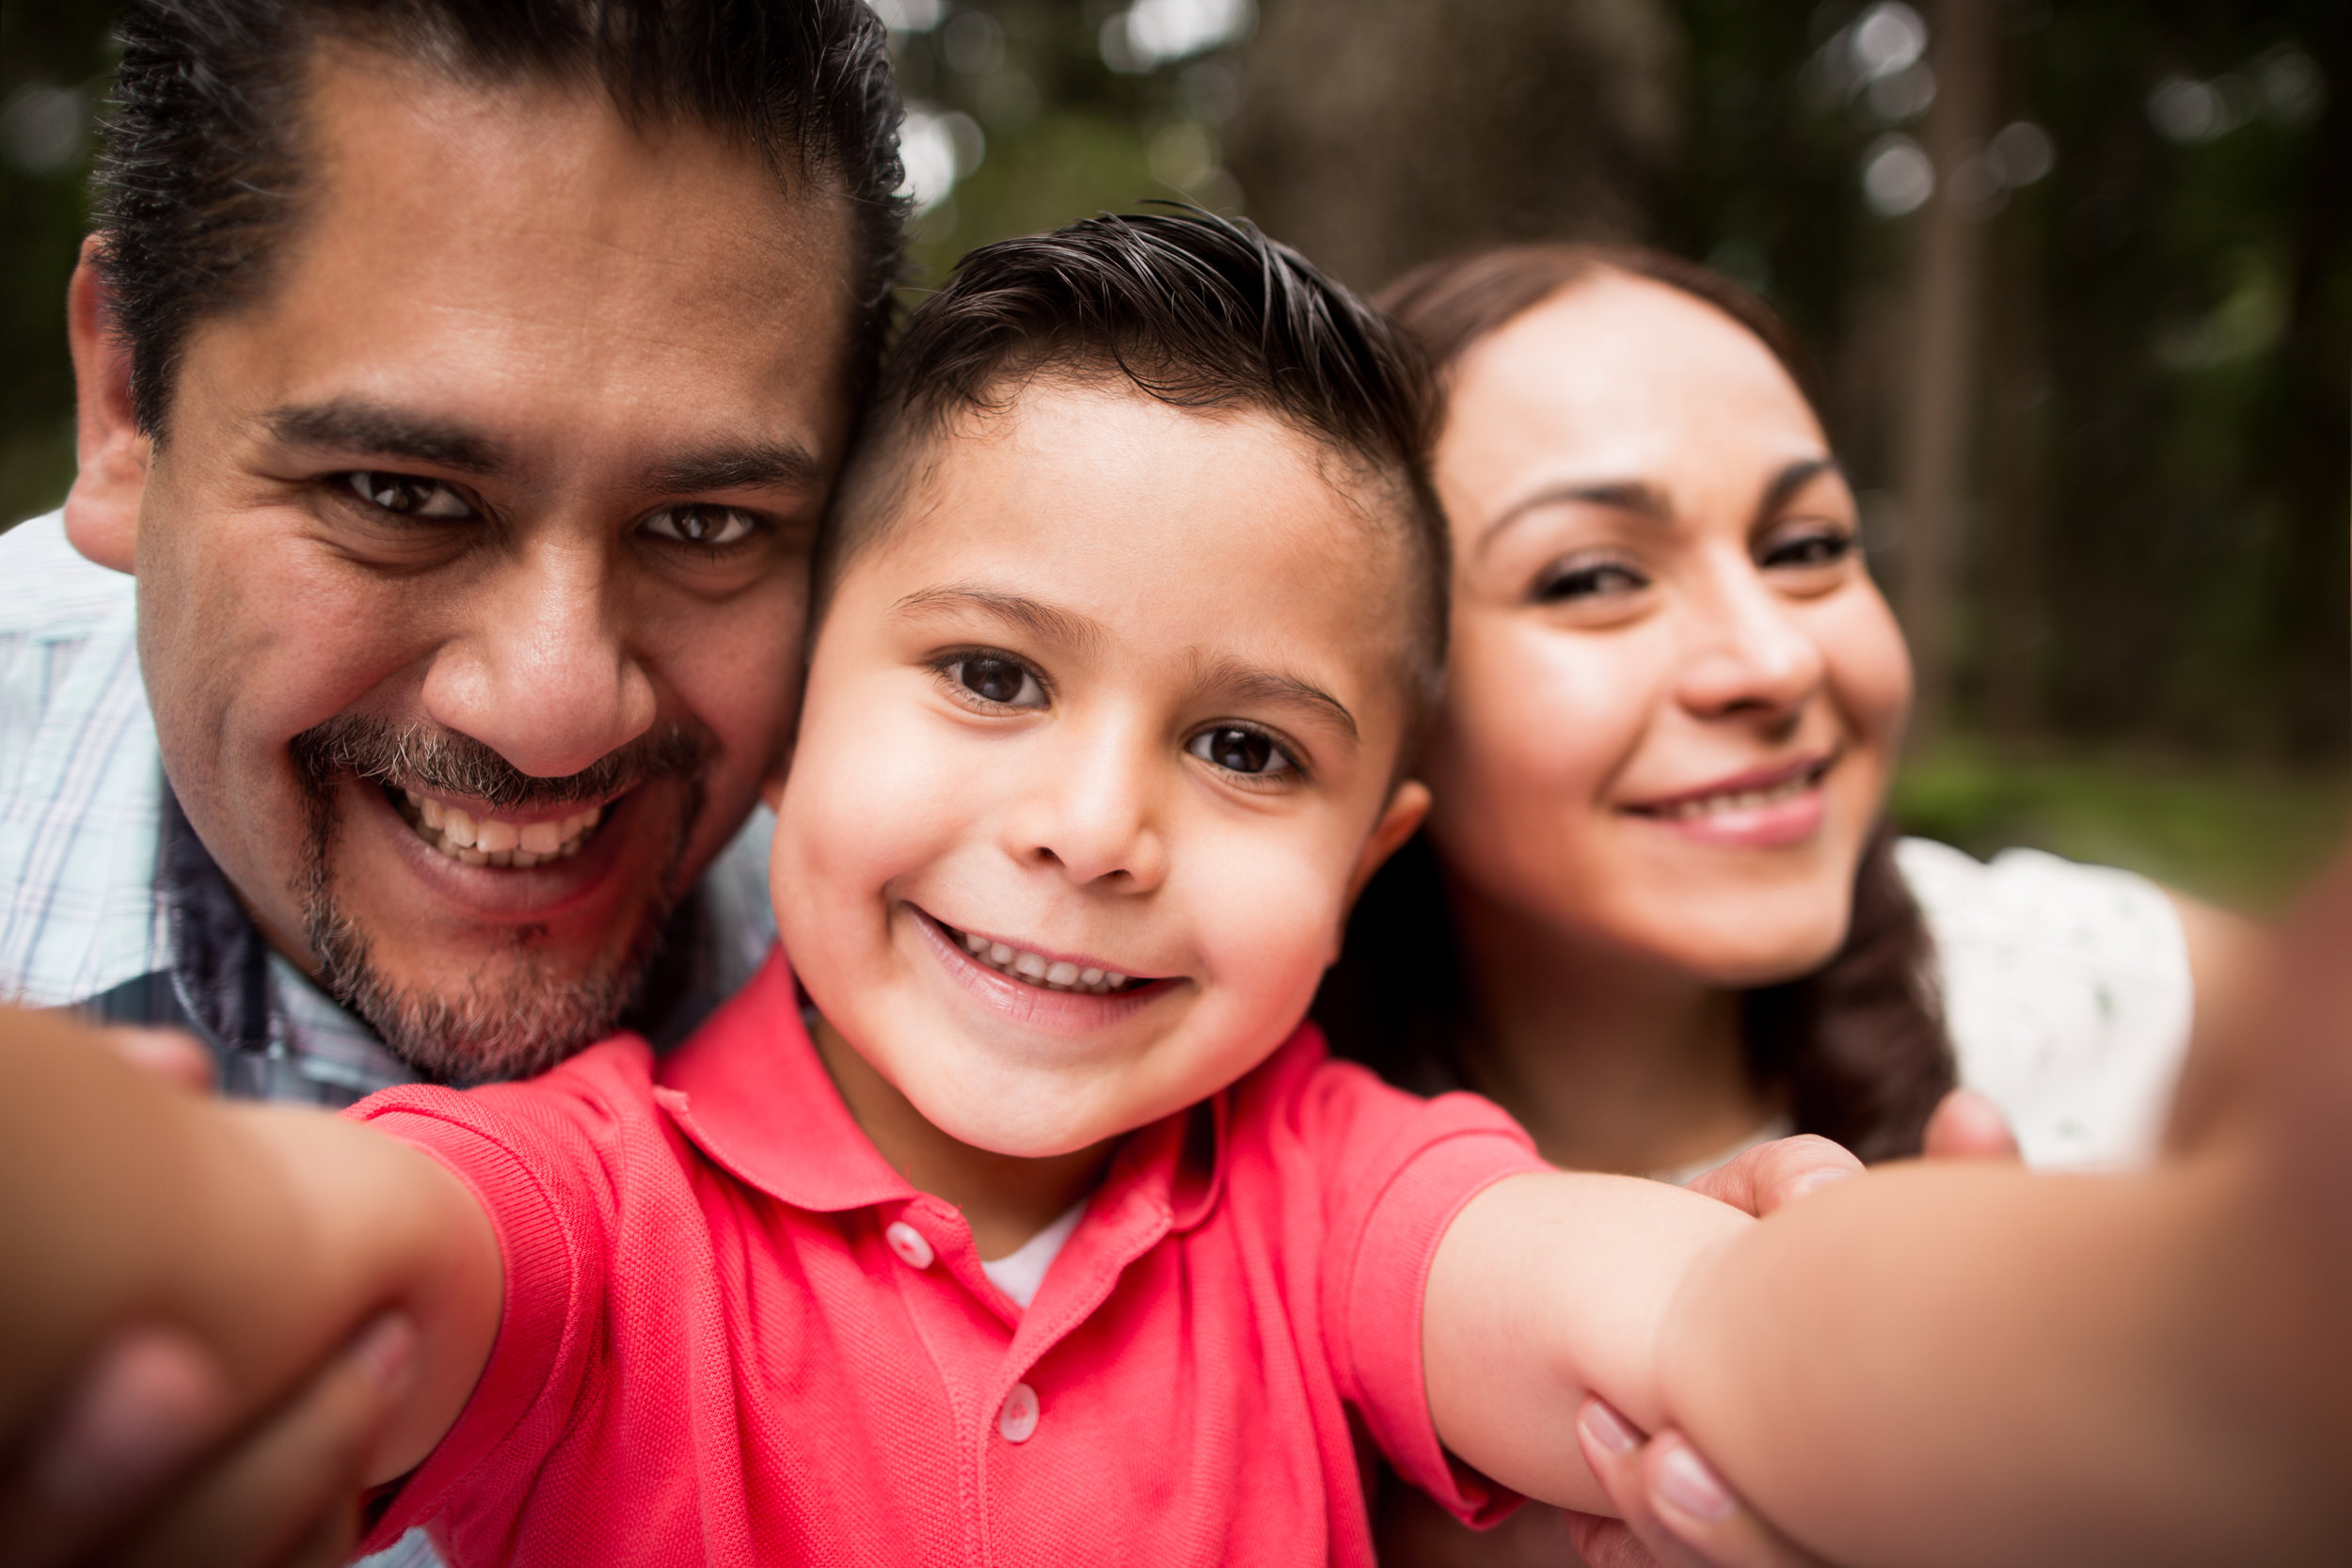 Latin-family-taking-a-selfie-and-smiling-at-camera-616887630_5760x3840.jpeg